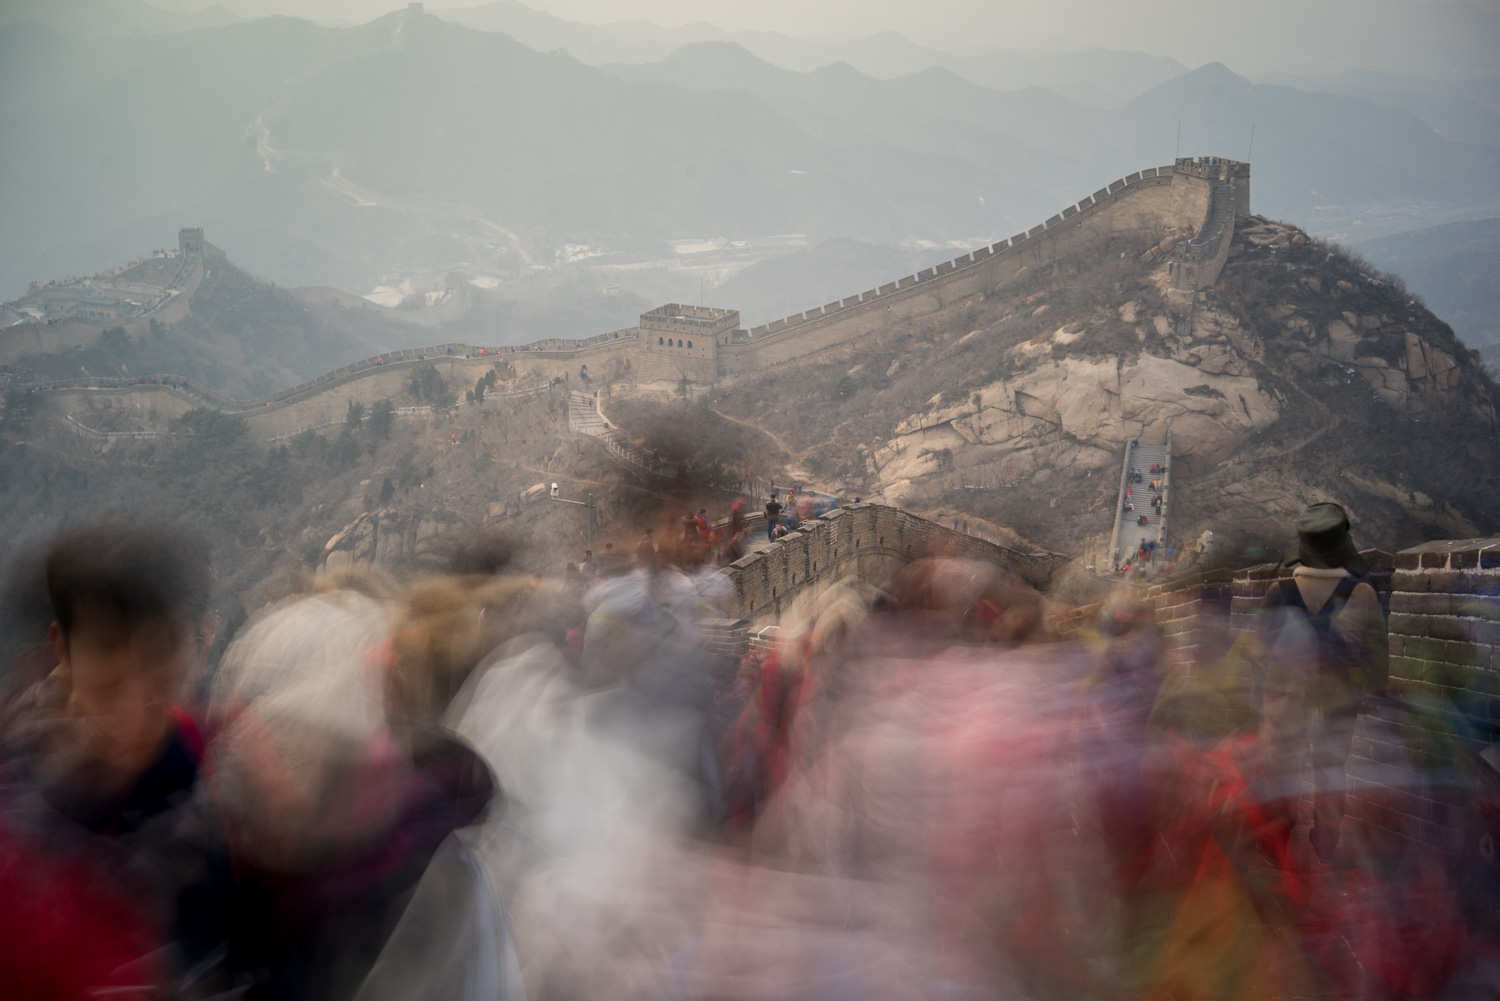 At the Badaling section of the Great Wall of China. Near Beijing, China